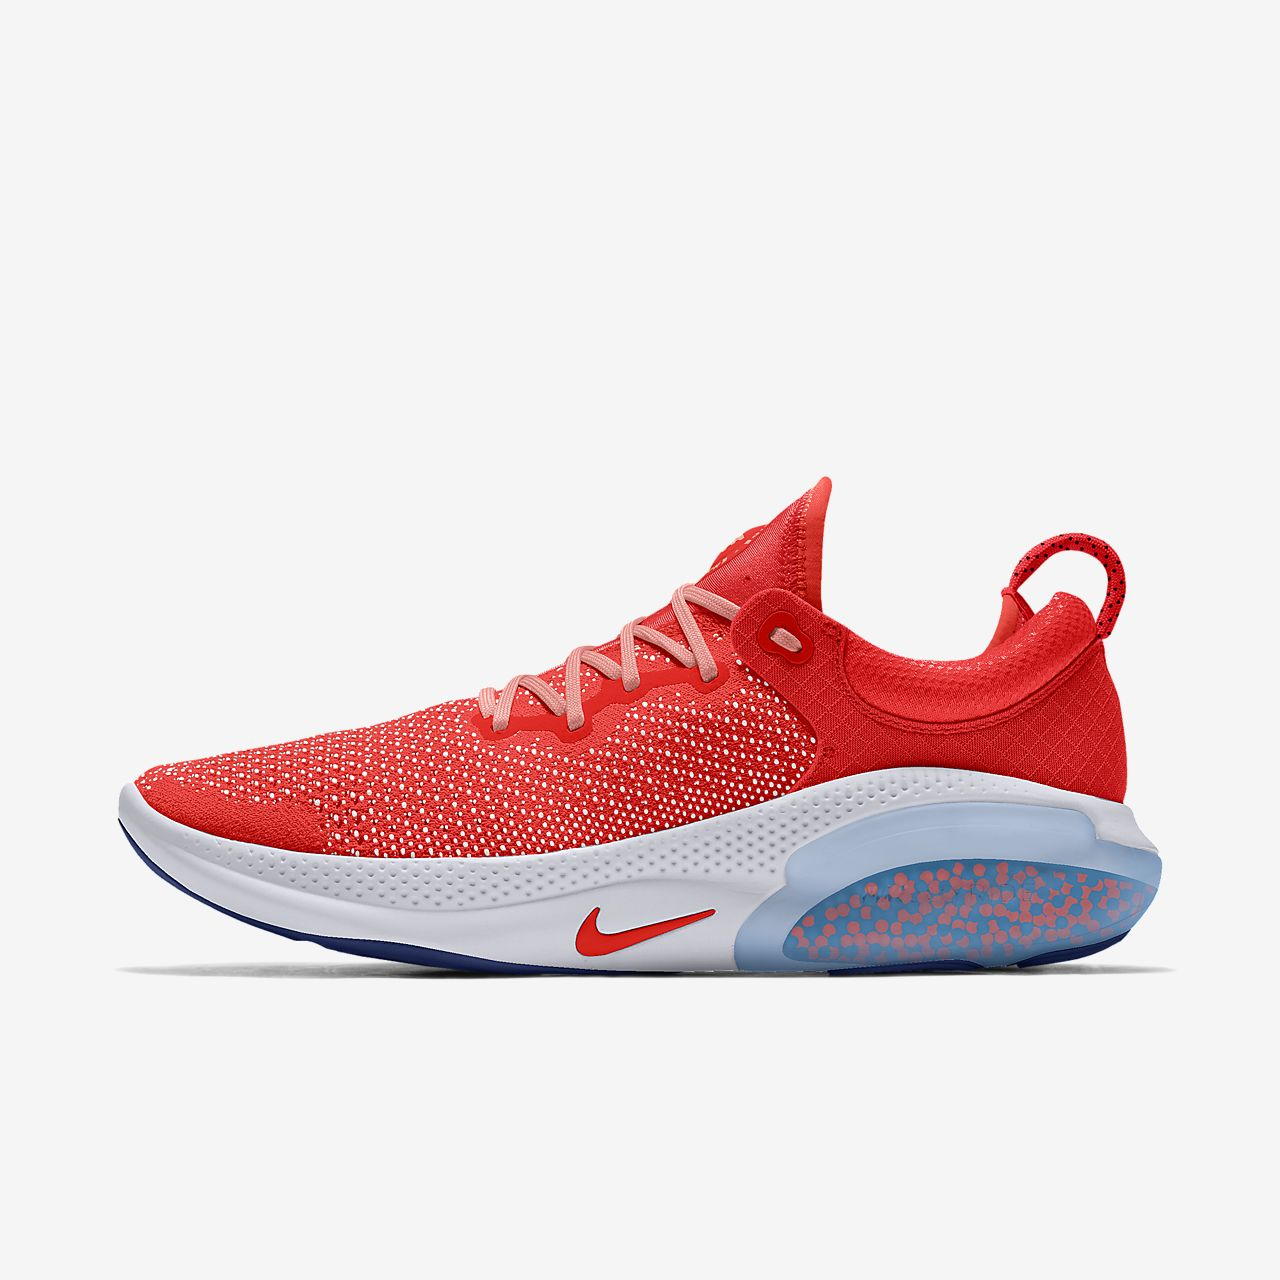 Nike Joyride Run Flyknit By You 專屬訂製女款跑鞋